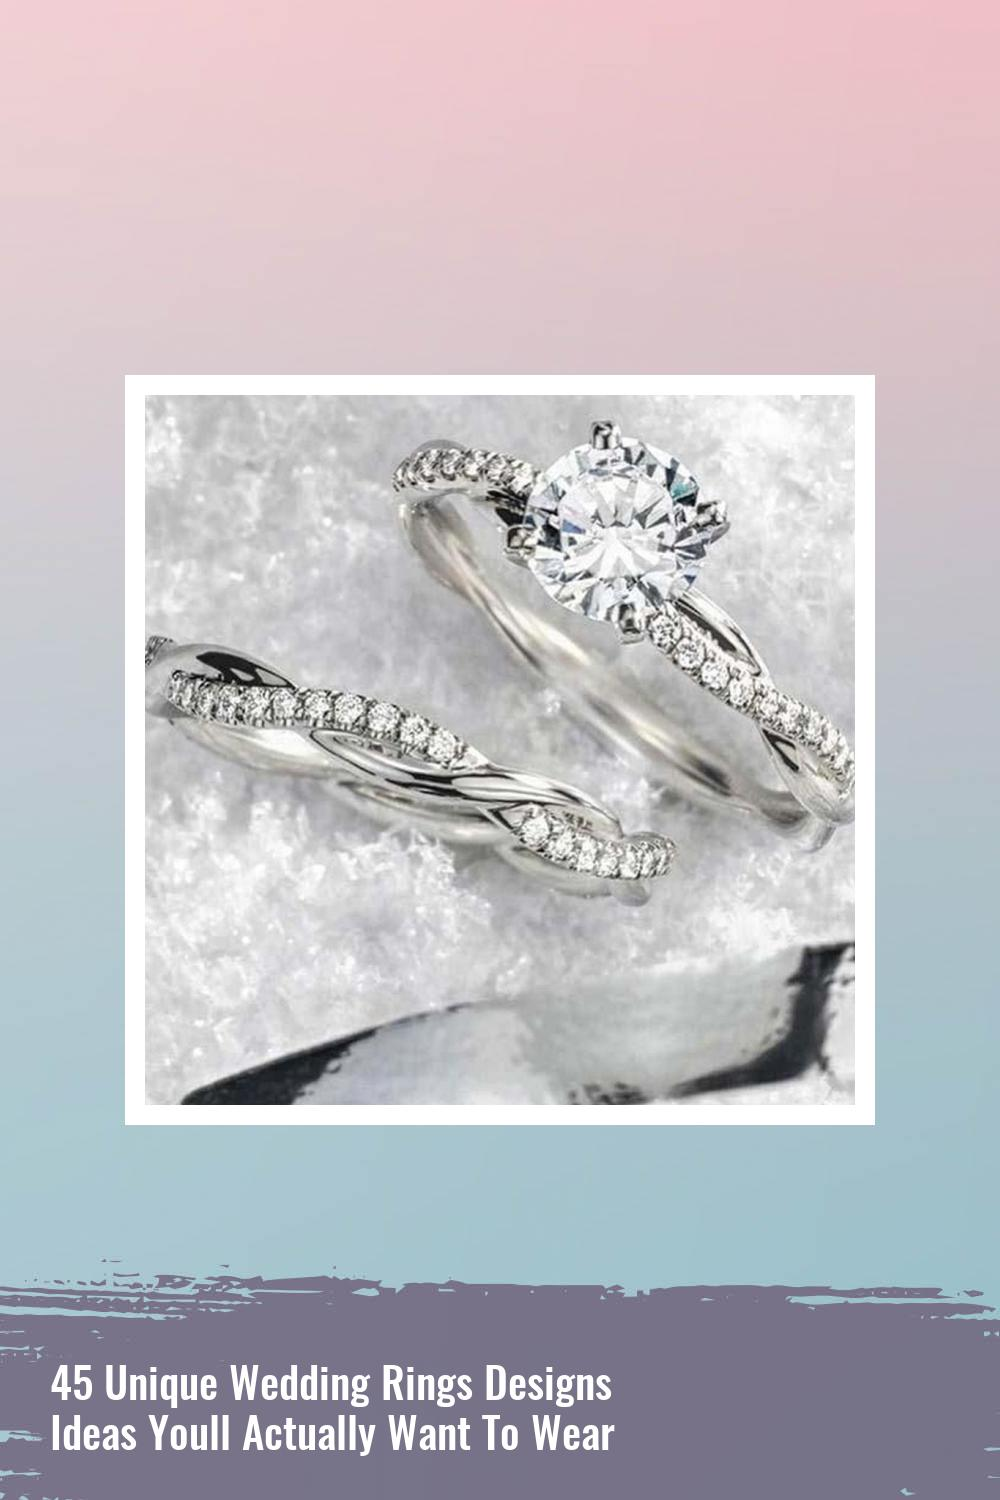 45 Unique Wedding Rings Designs Ideas Youll Actually Want To Wear 1